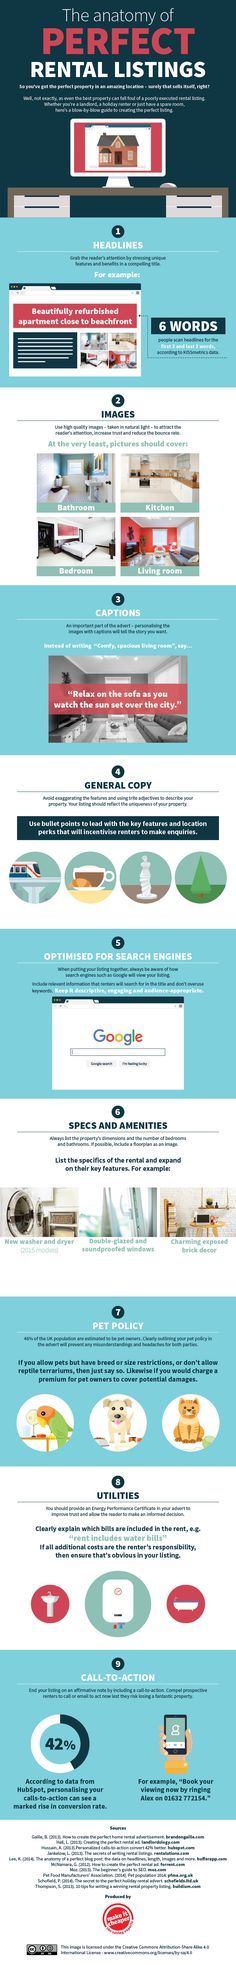 Renting a place can be a difficult process. But, if you start the process with the perfect listing you'll be closer to your goal. Discover how to create perfect rental listing in this helpful infographic from Make It Cheaper. Rental Listings, Rental Property, Places To Rent, Residential Real Estate, The More You Know, Data Visualization, Property Management, Being A Landlord, Anatomy